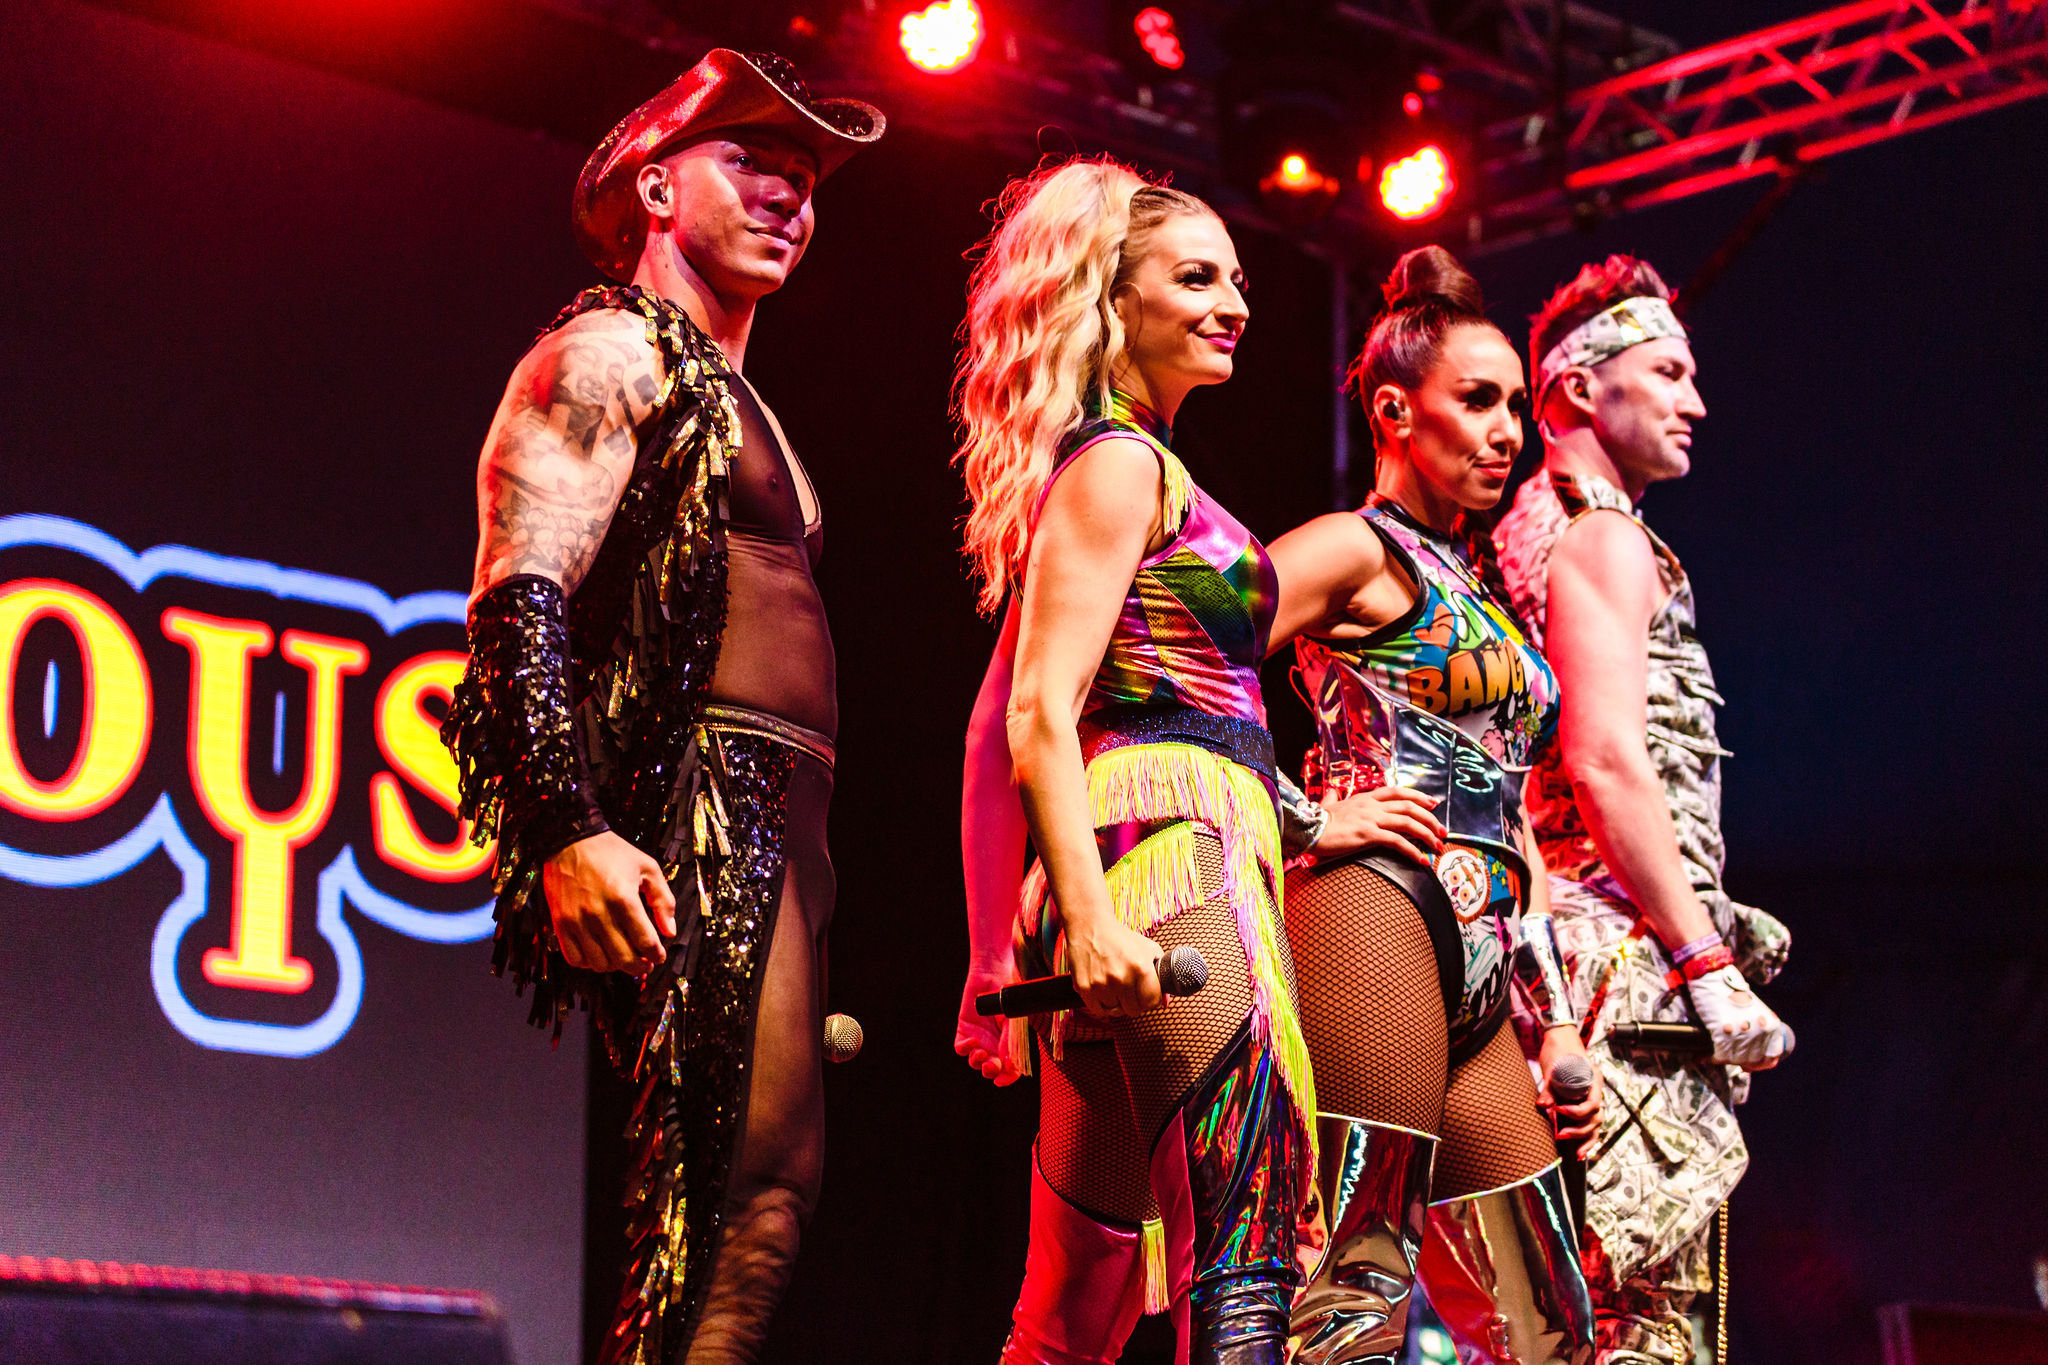 SATURDAY_BIGTOP_VENGABOYS_-108.JPG